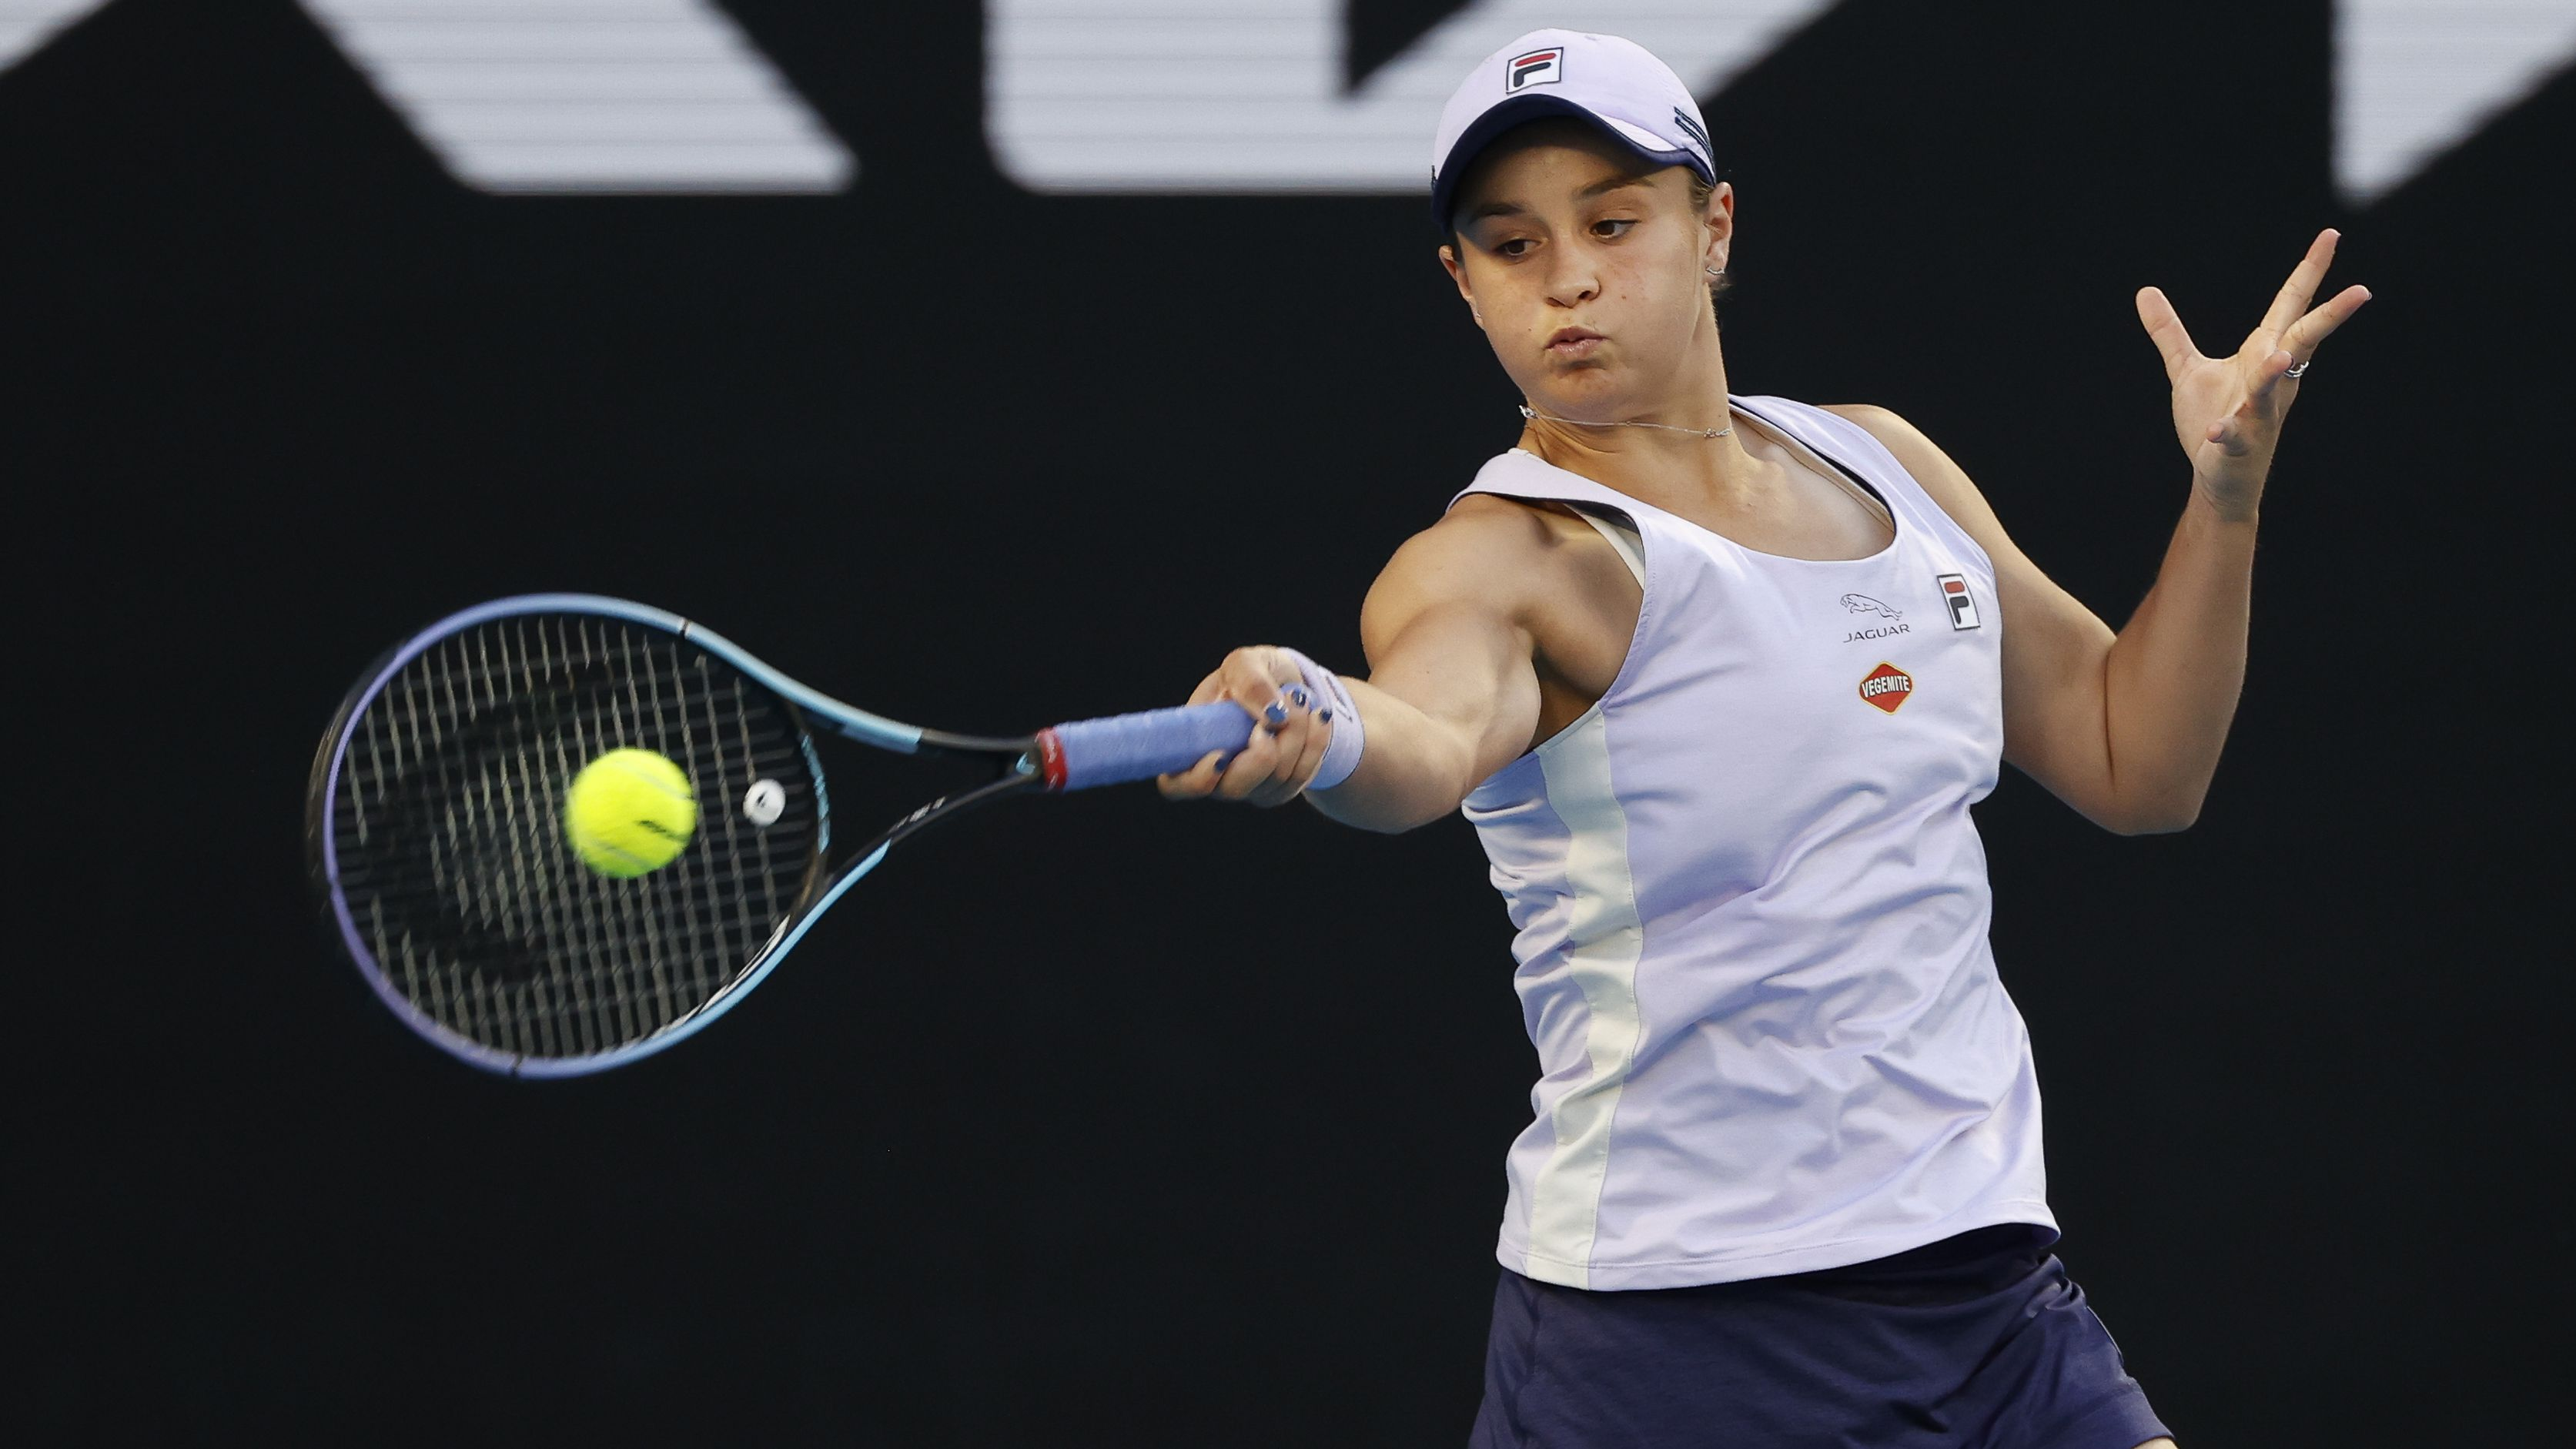 Ash Barty tears through opening round of Australian Open